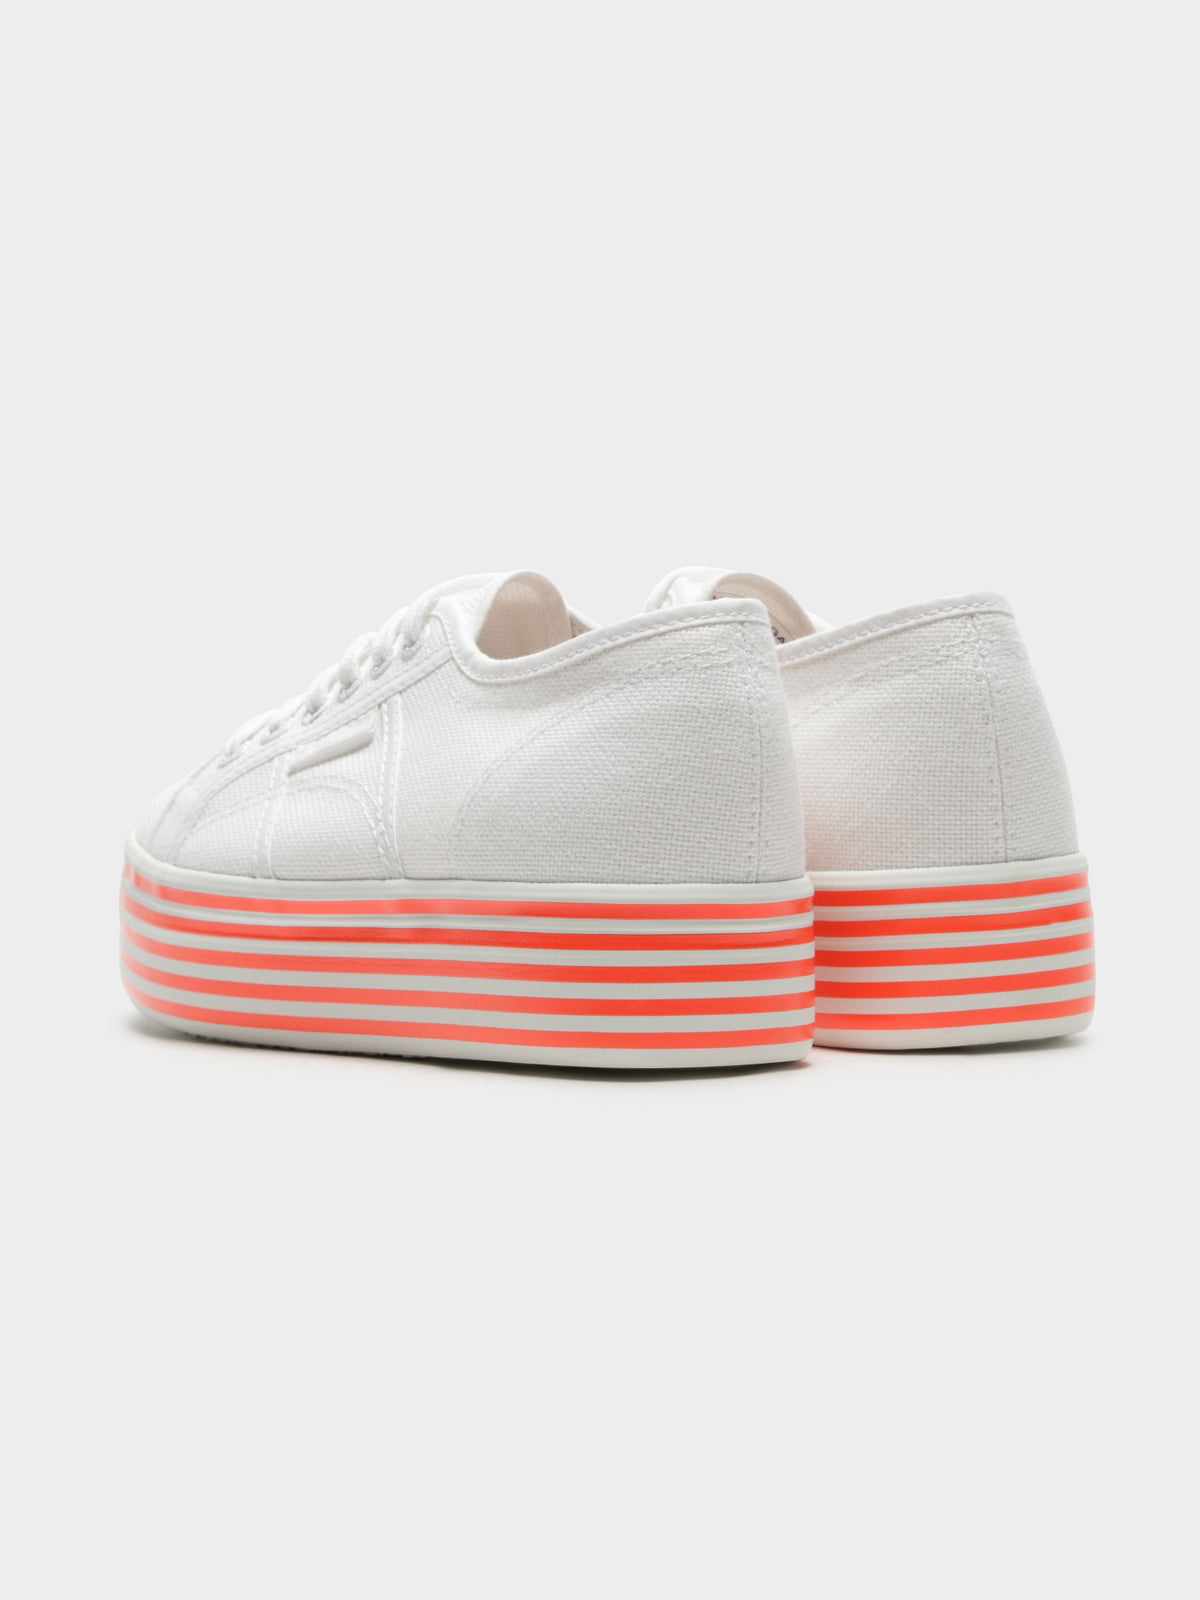 Womens 2790 Multicolor Cotw Stripe Sneakers in White & Pink